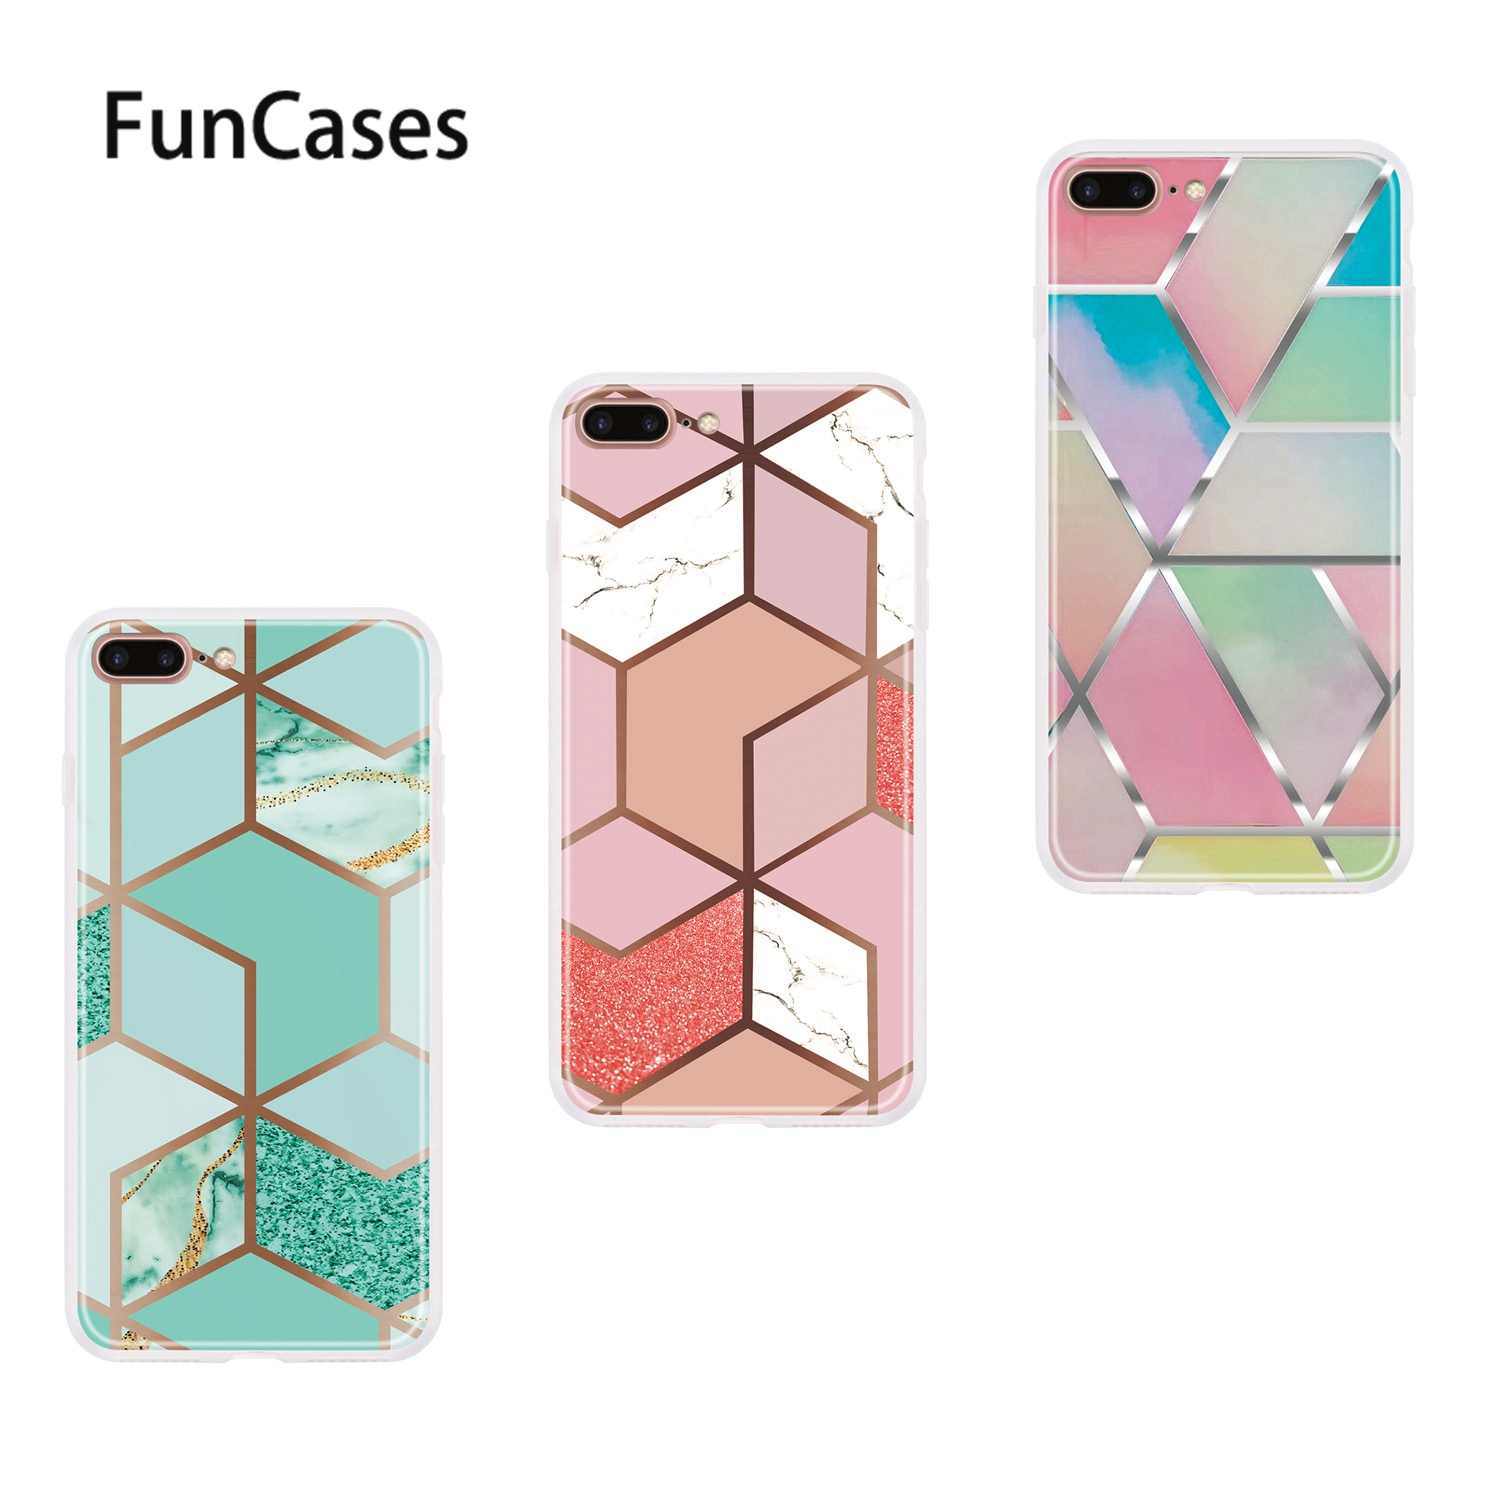 Cube Soft Silicone Protector For Estuche Iphone 7 Plus Fundas Telefoon Cell Covers Sfor Shell Apple Iphone Estuche 8 Plus 5 5 Wallet Cases Aliexpress